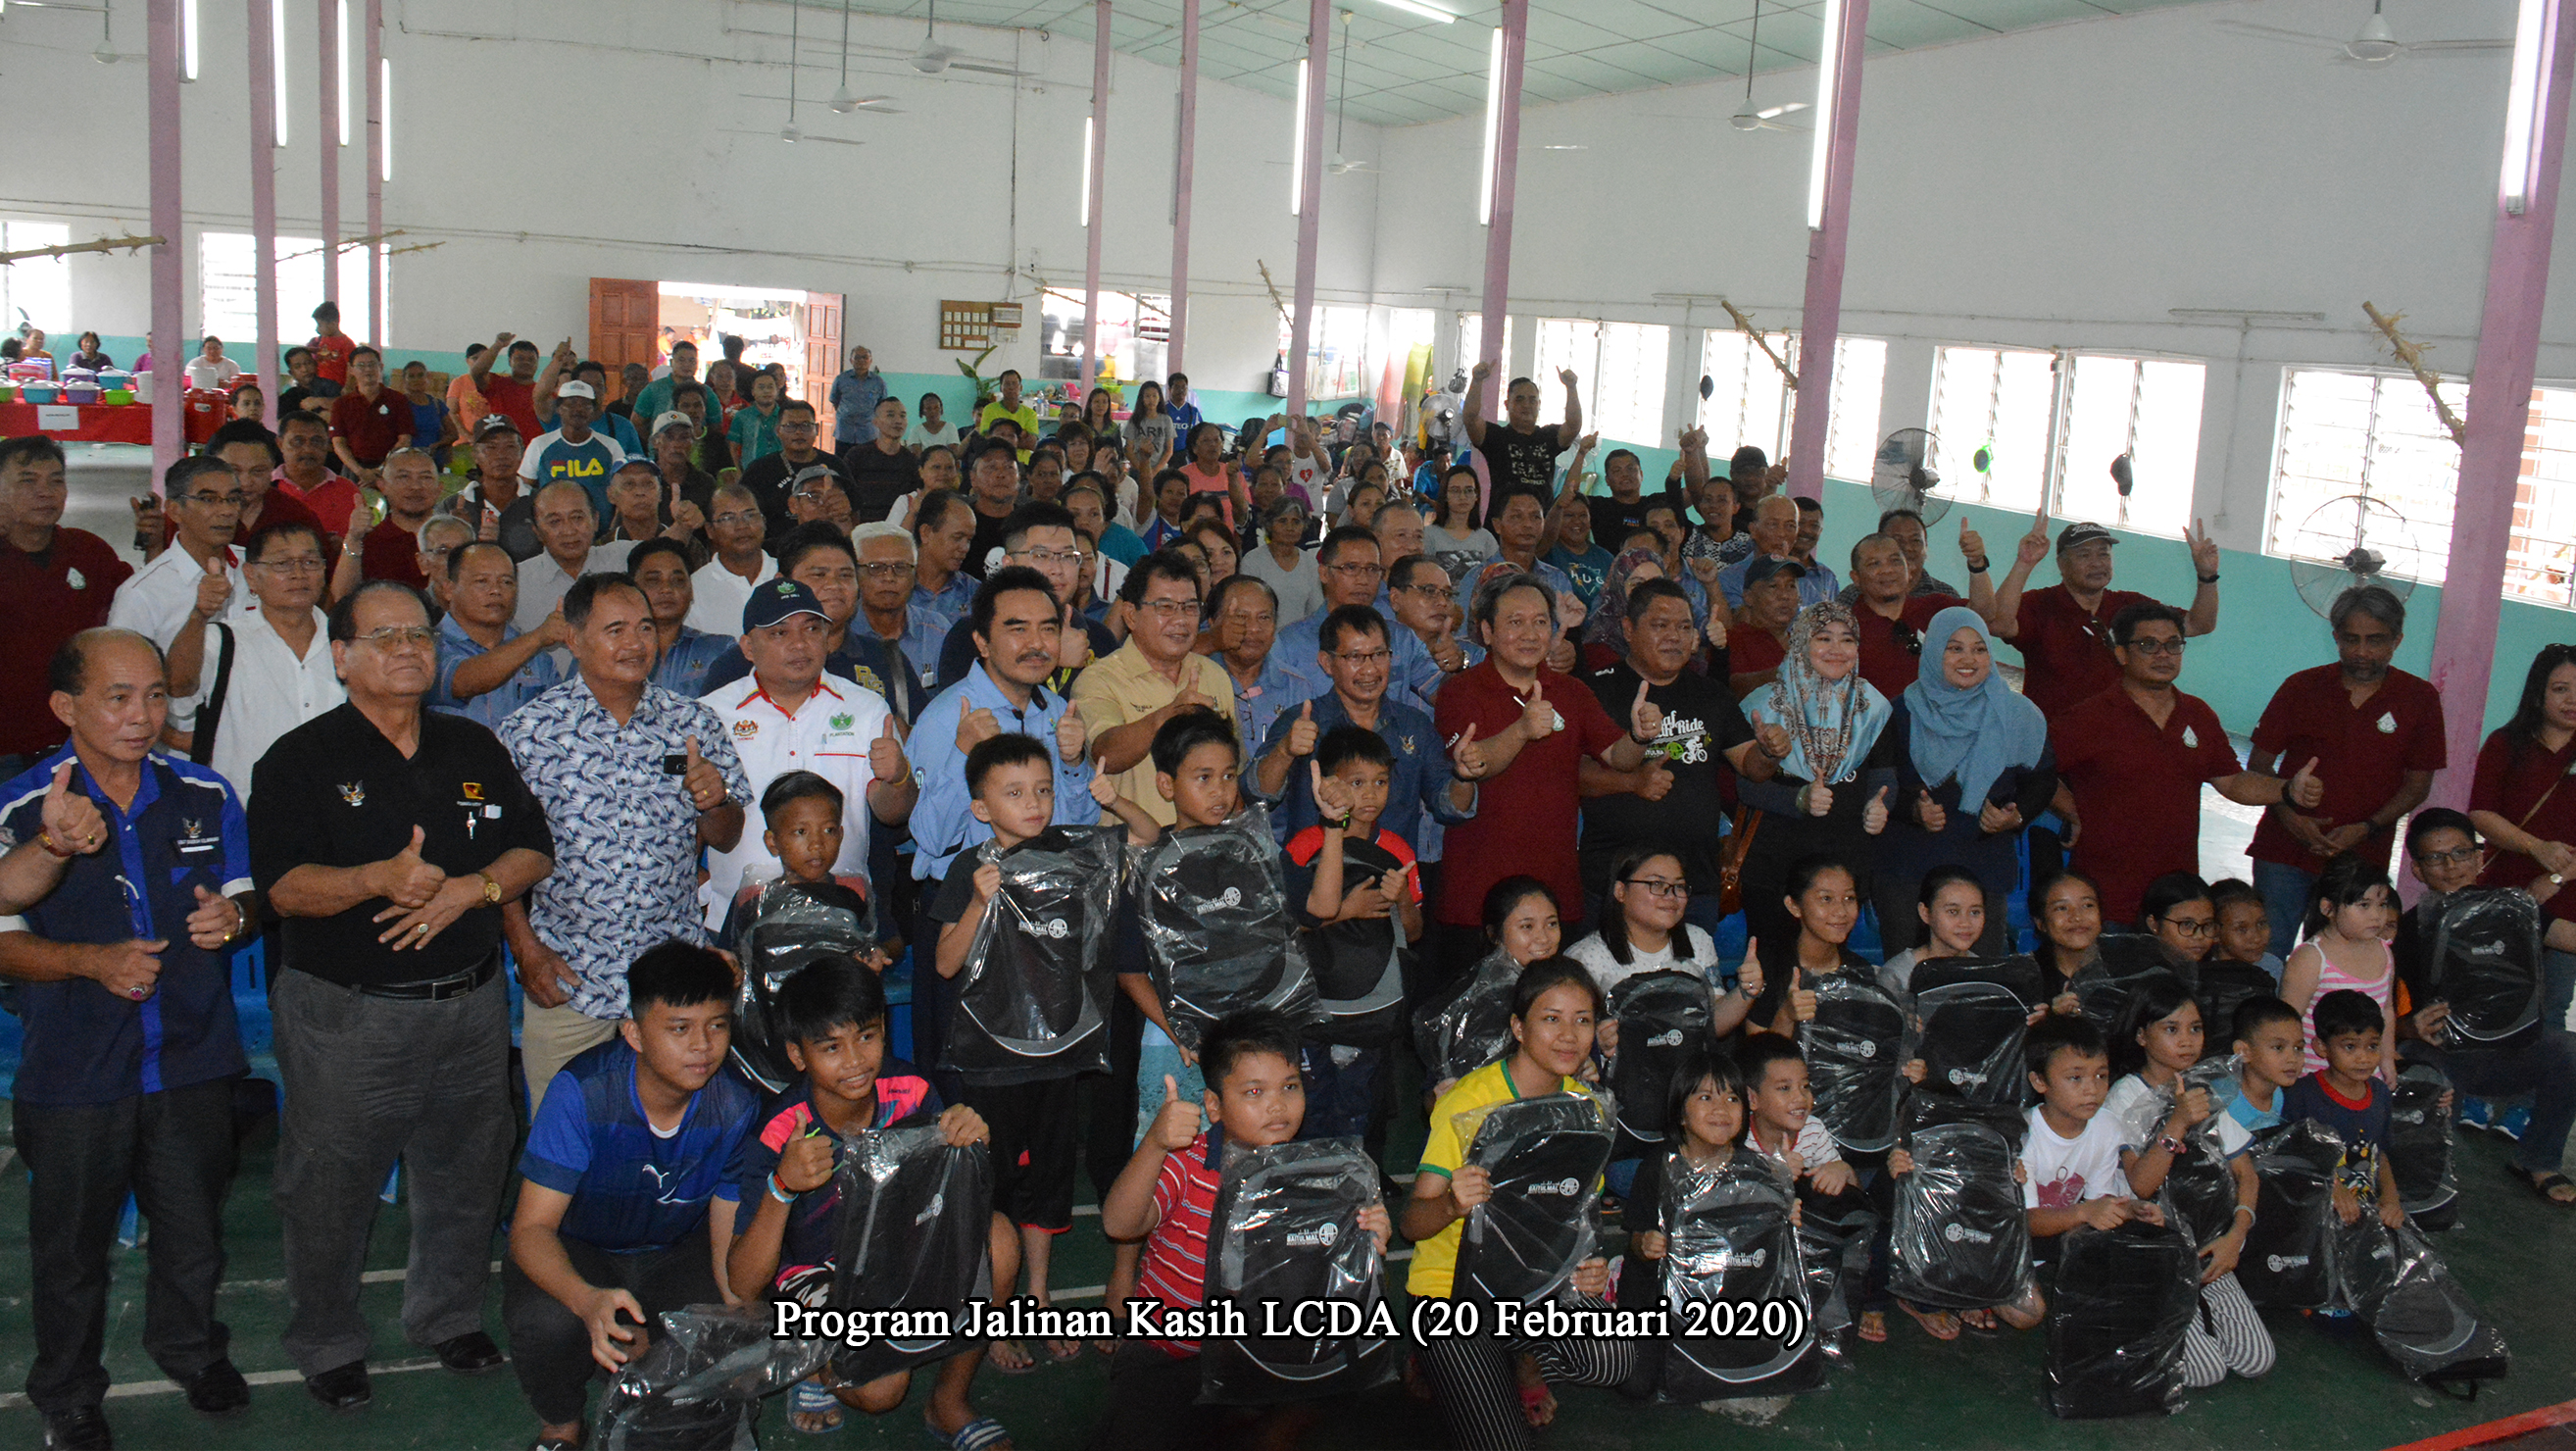 005 Program Jalinan Kasih LCDA